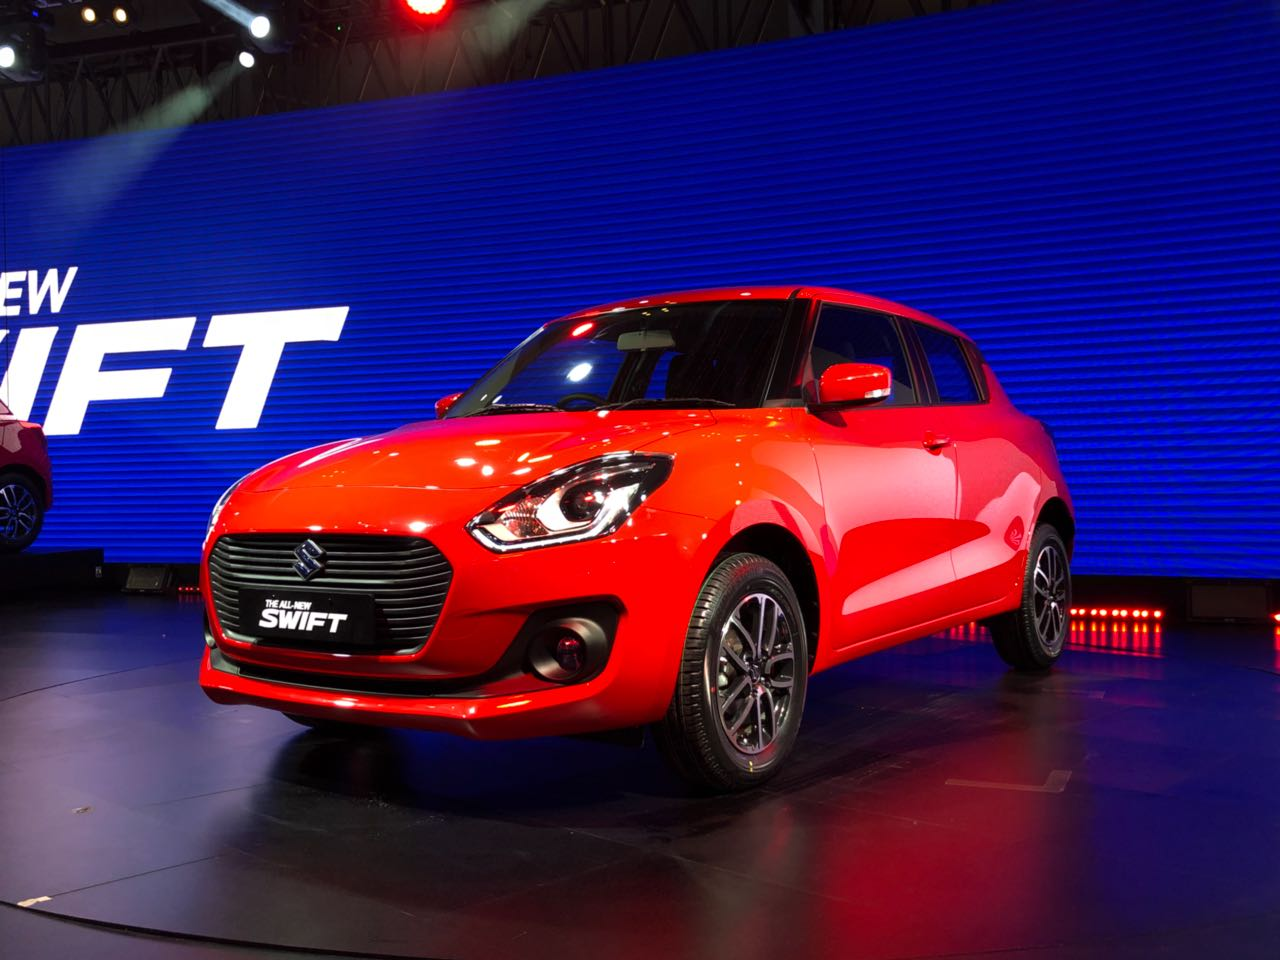 All New Maruti Suzuki Swift Launched, Starting Price - Rs 4.99 Lakh